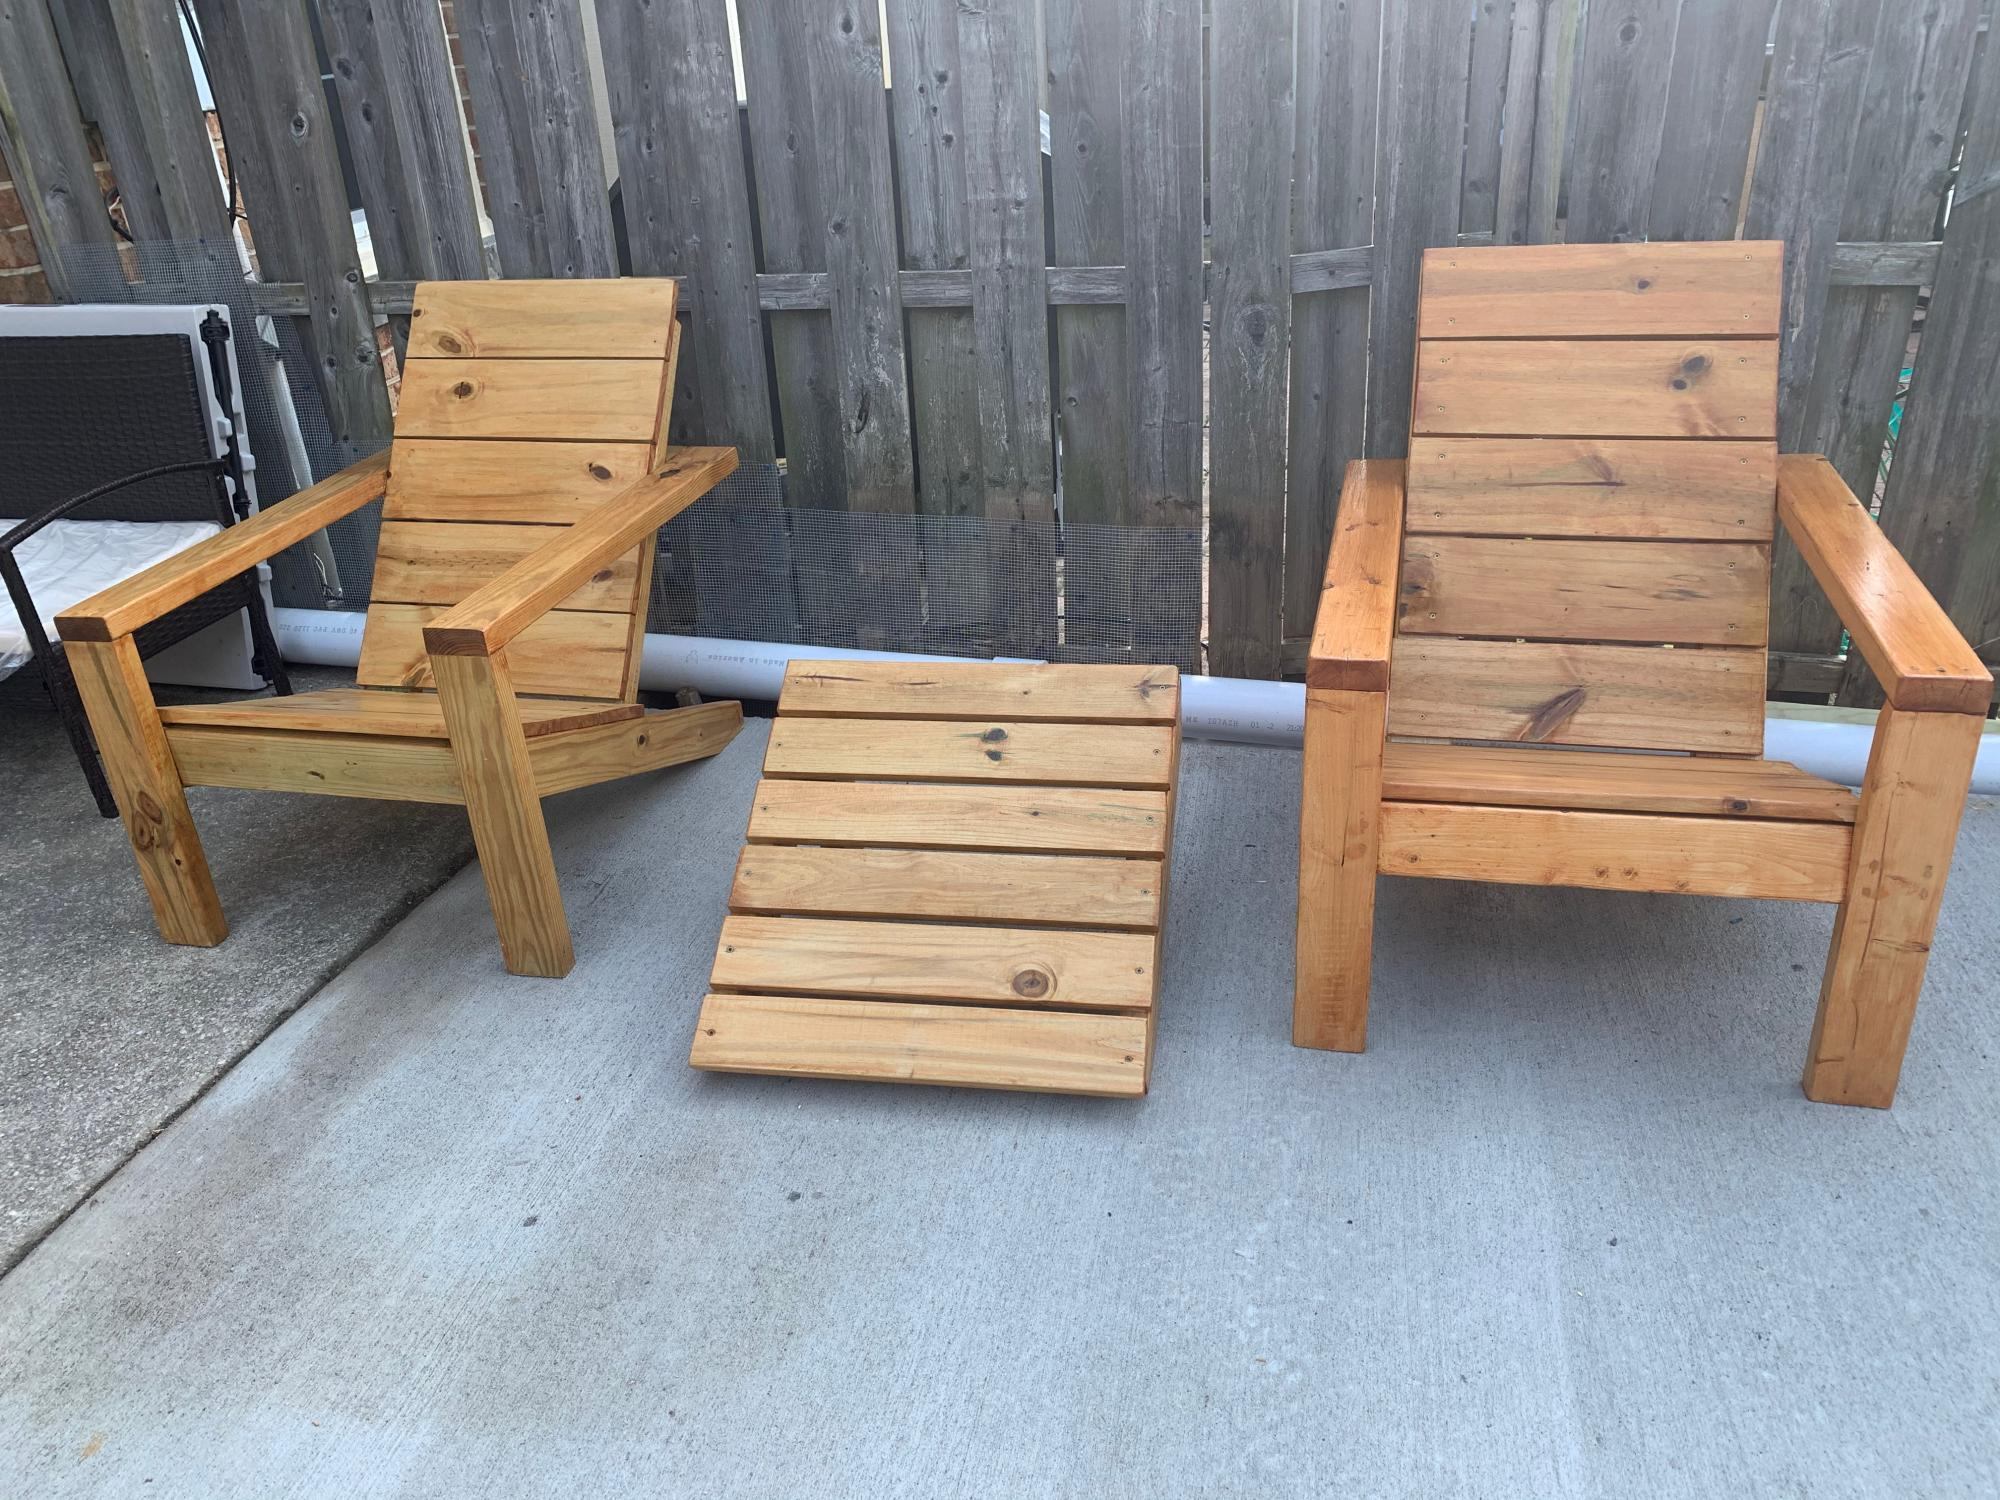 Adirondack Chairs First Ever Wood Project Completed